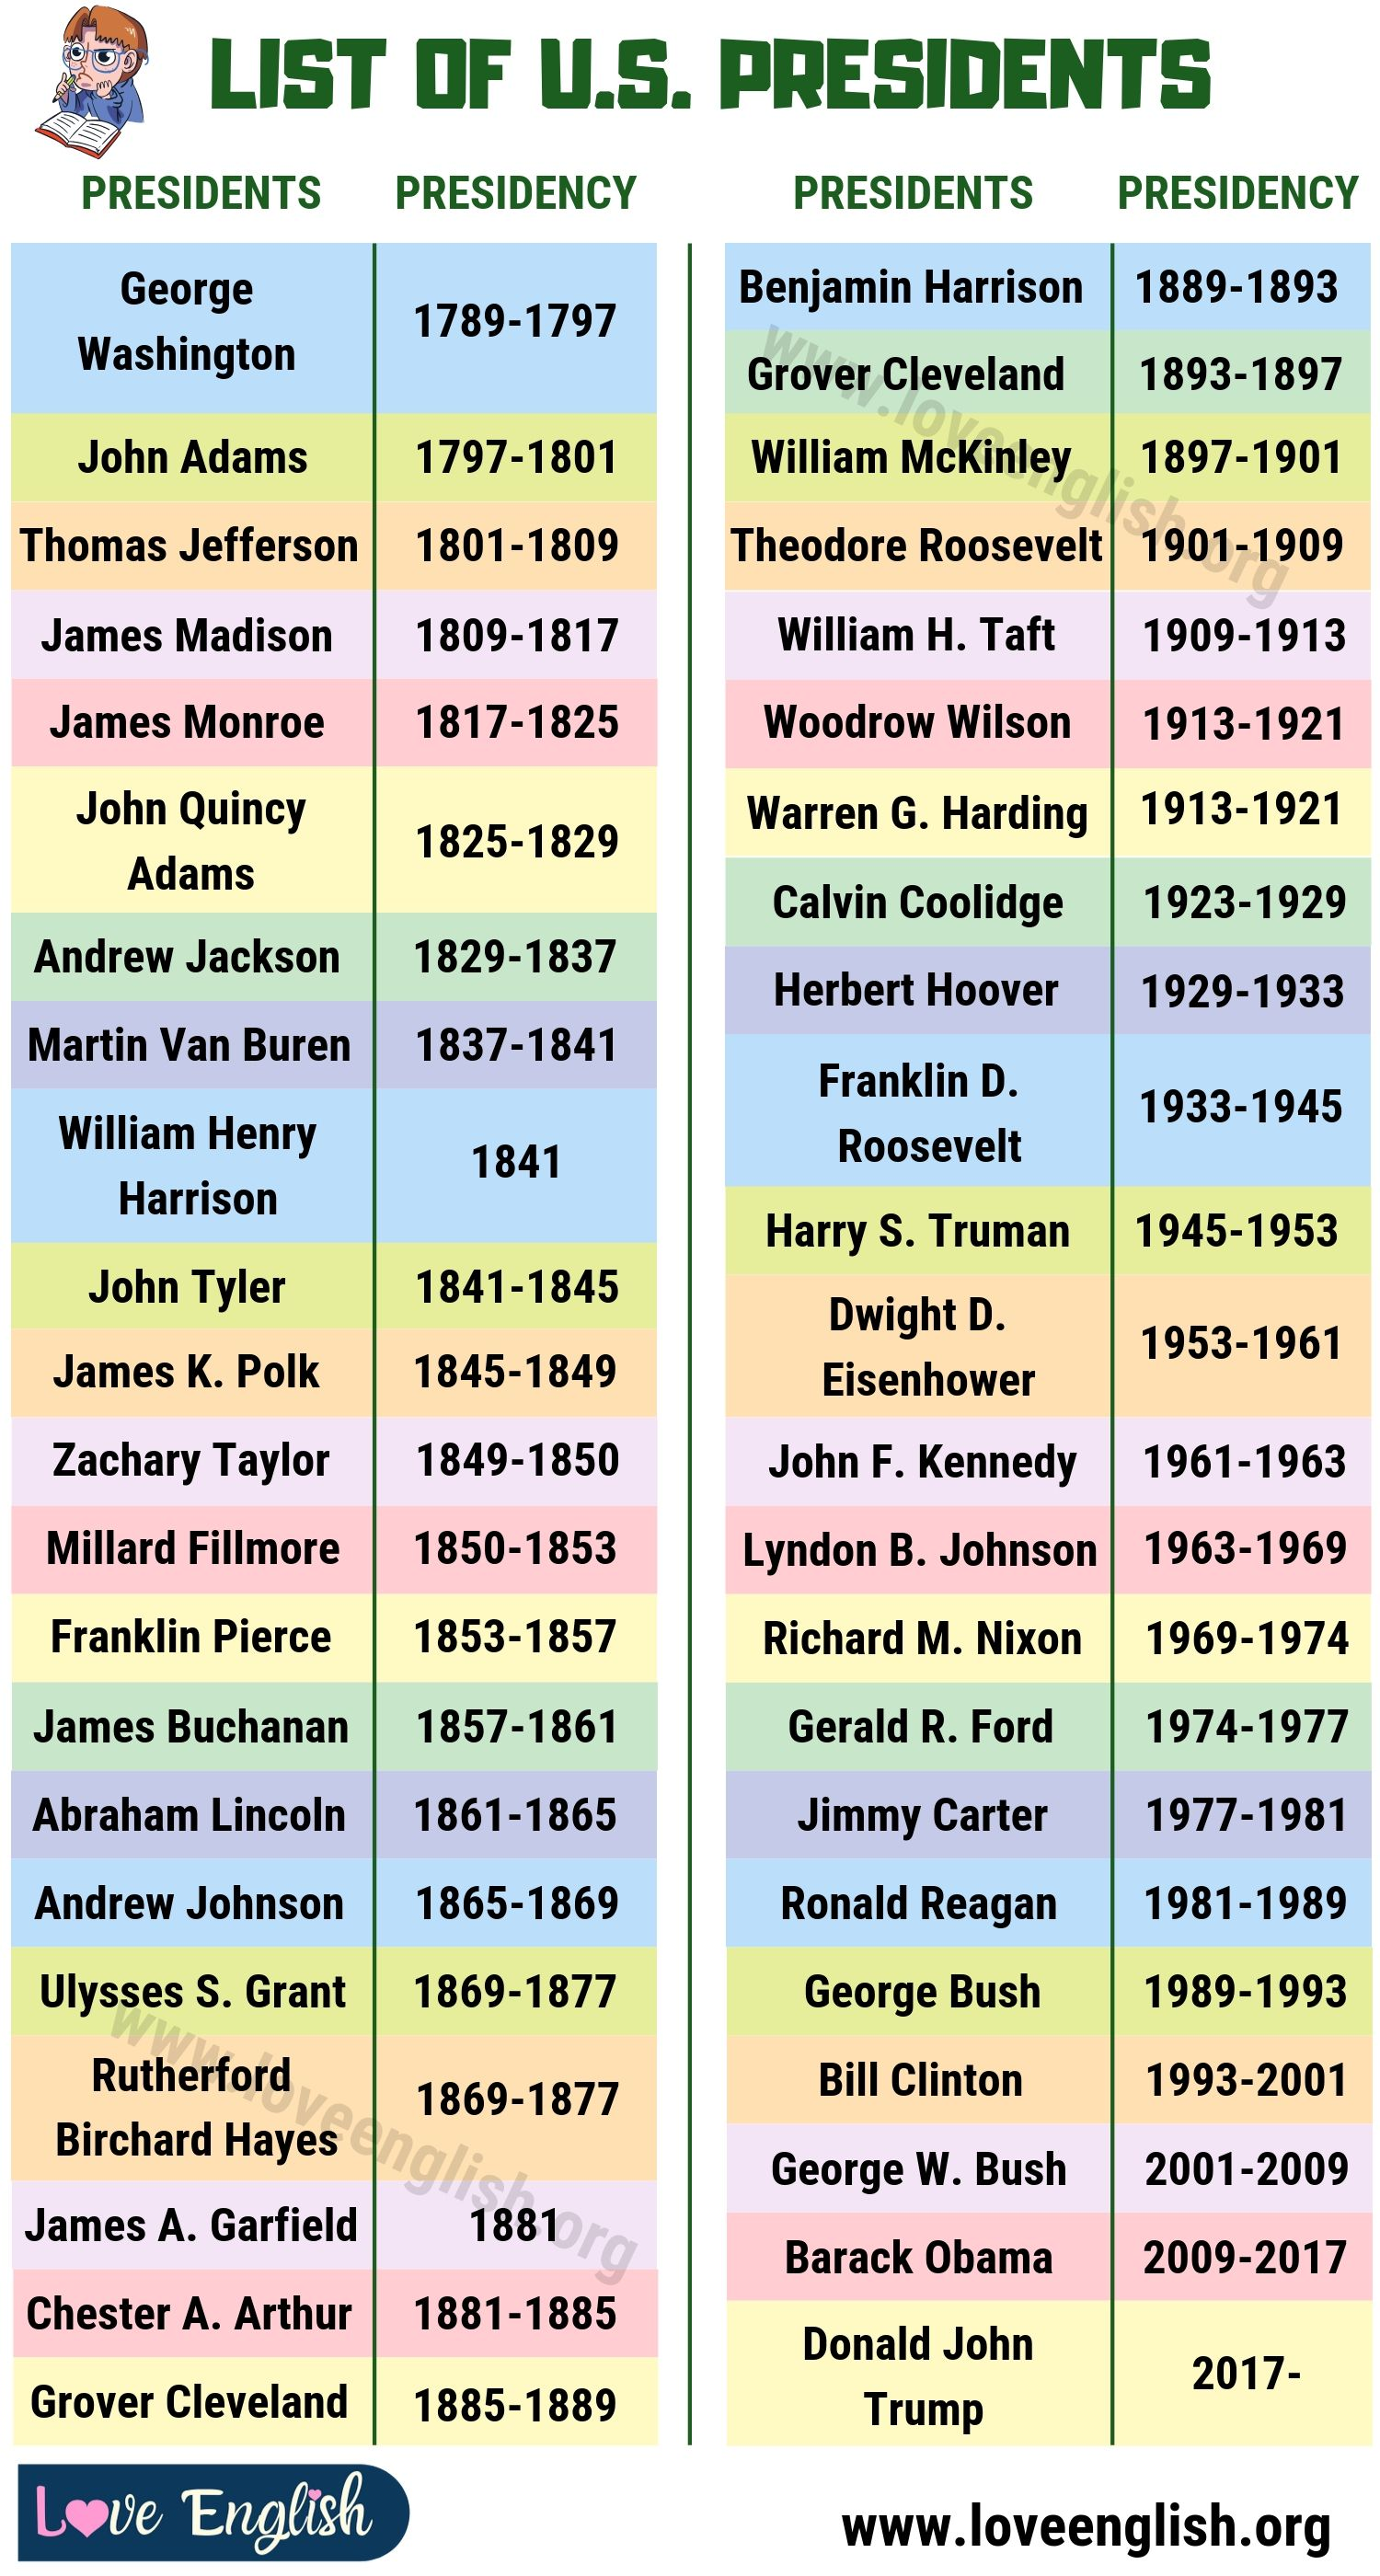 List of US Presidents